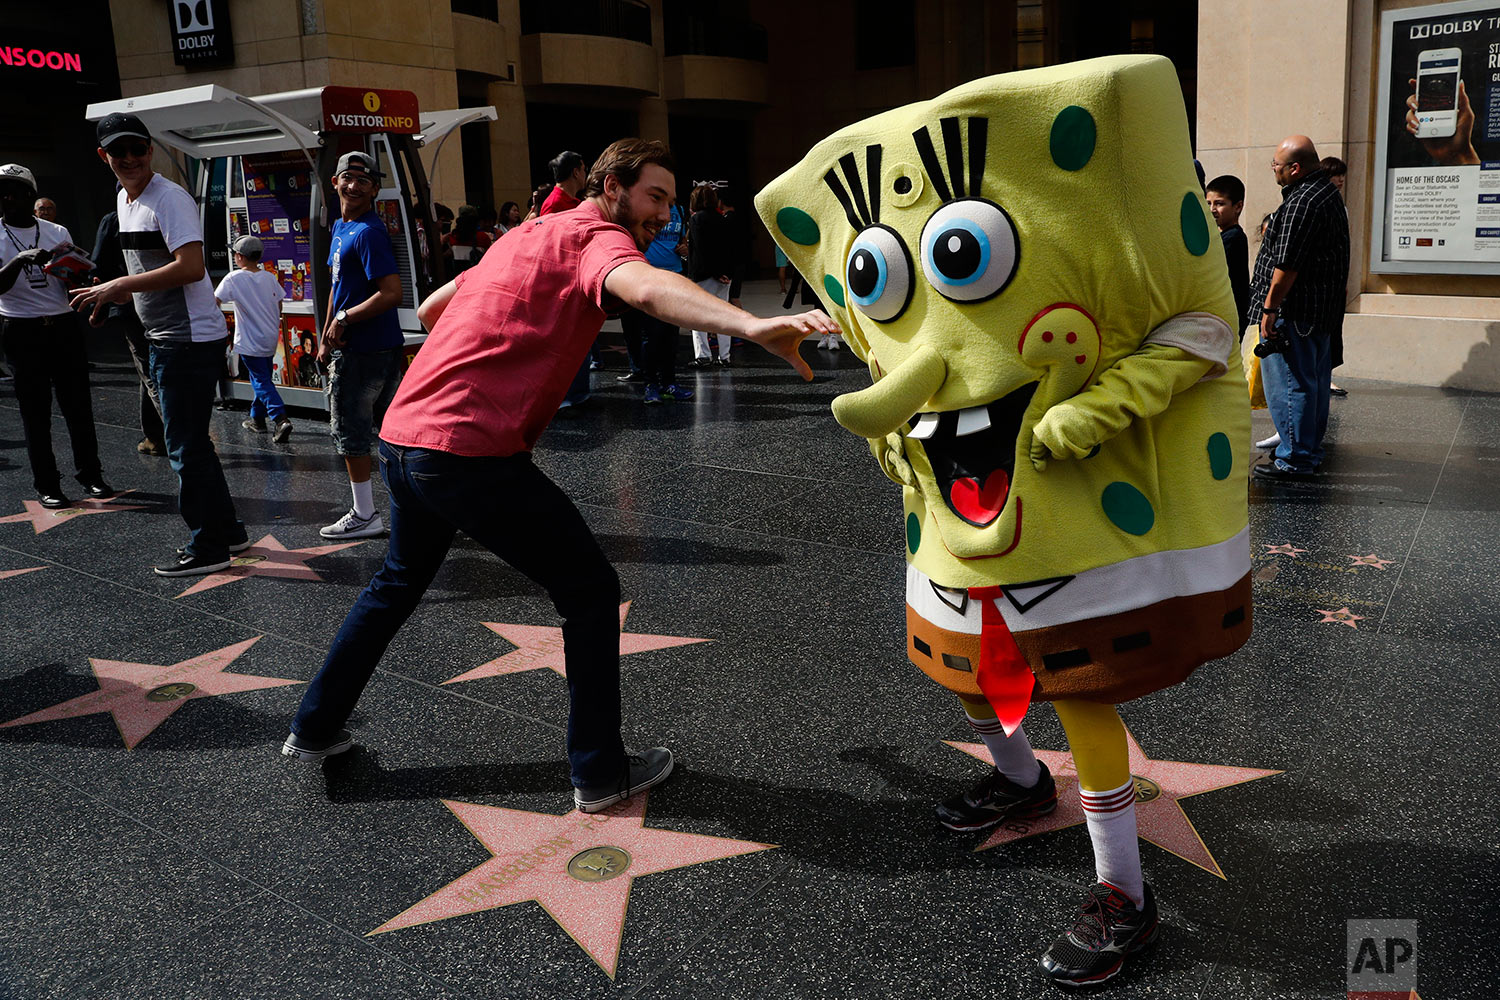 "In this Monday, April 17, 2017 photo, Belnarr Golden, wearing a SpongeBob SquarePants costume, dodges a tourist trying to pull the nose of his costume on Hollywood Boulevard, in Los Angeles. Longtime street performers say the business used to be more lucrative, until the boulevard became overpopulated with costumed characters.  ""I crack jokes on them. That's my trick. I make them laugh,"" said Golden. ""If I stand still, I'm not getting paid."" (AP Photo/Jae C. Hong)"